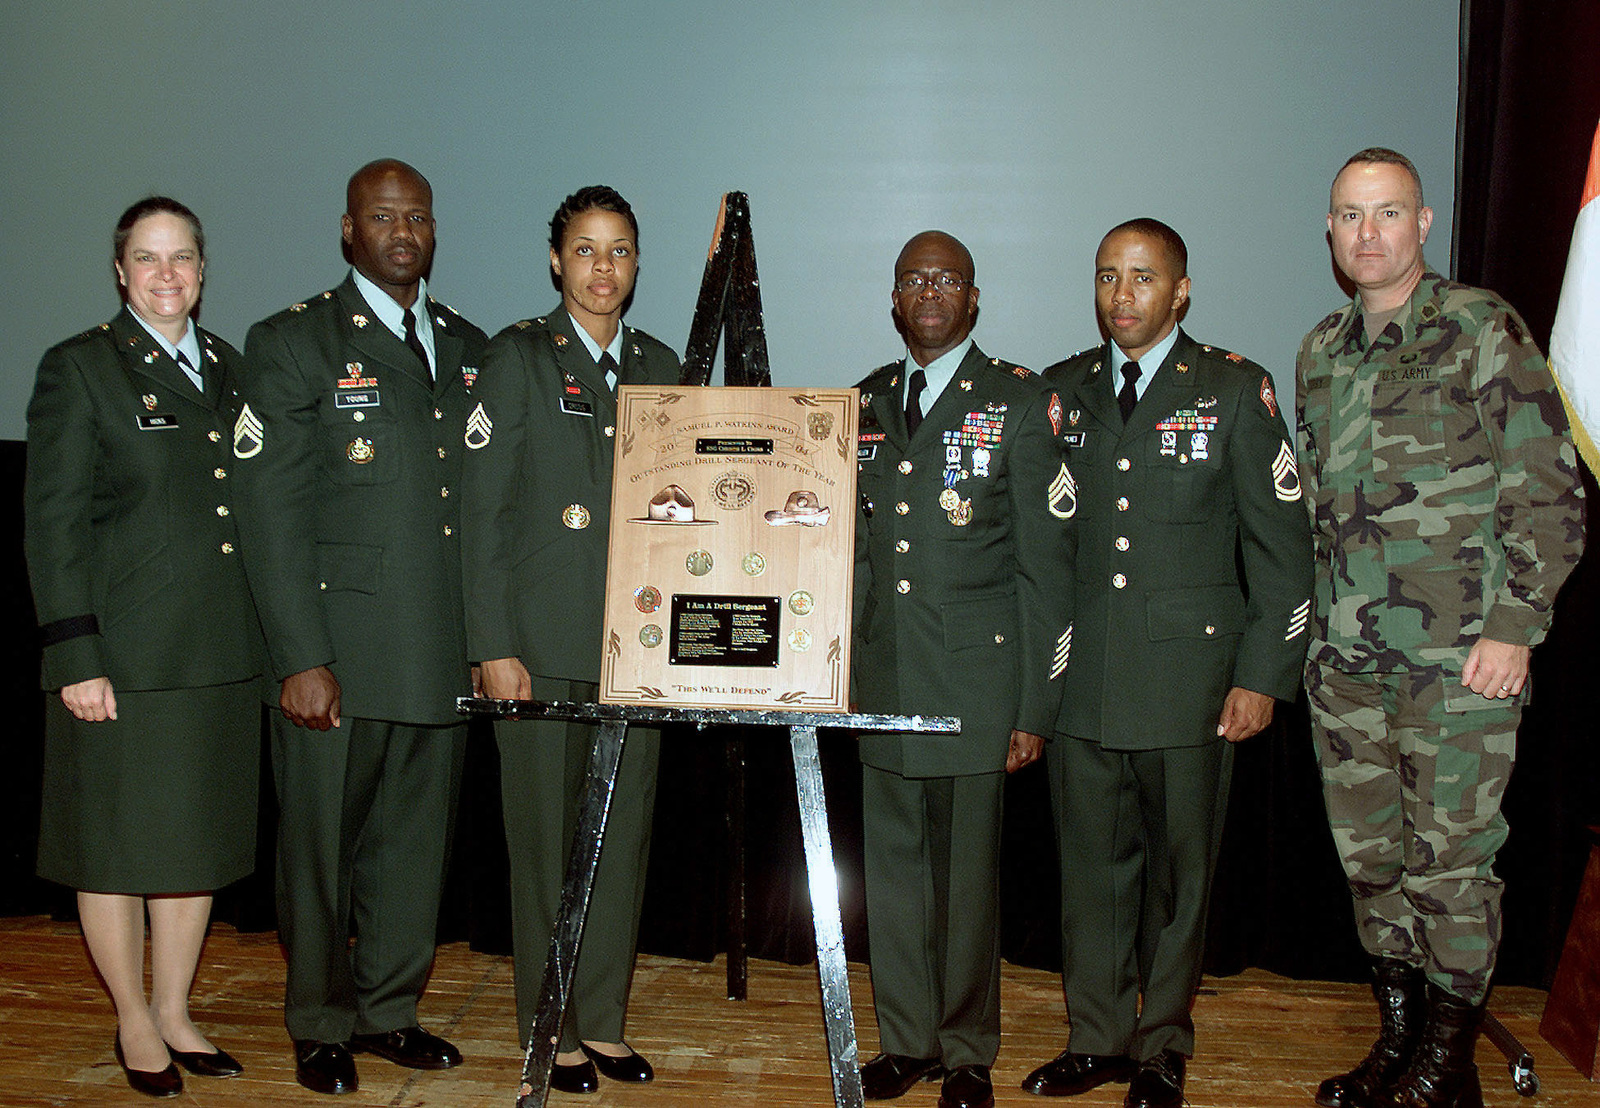 During the Drill Sergeant of the Year ceremony, the